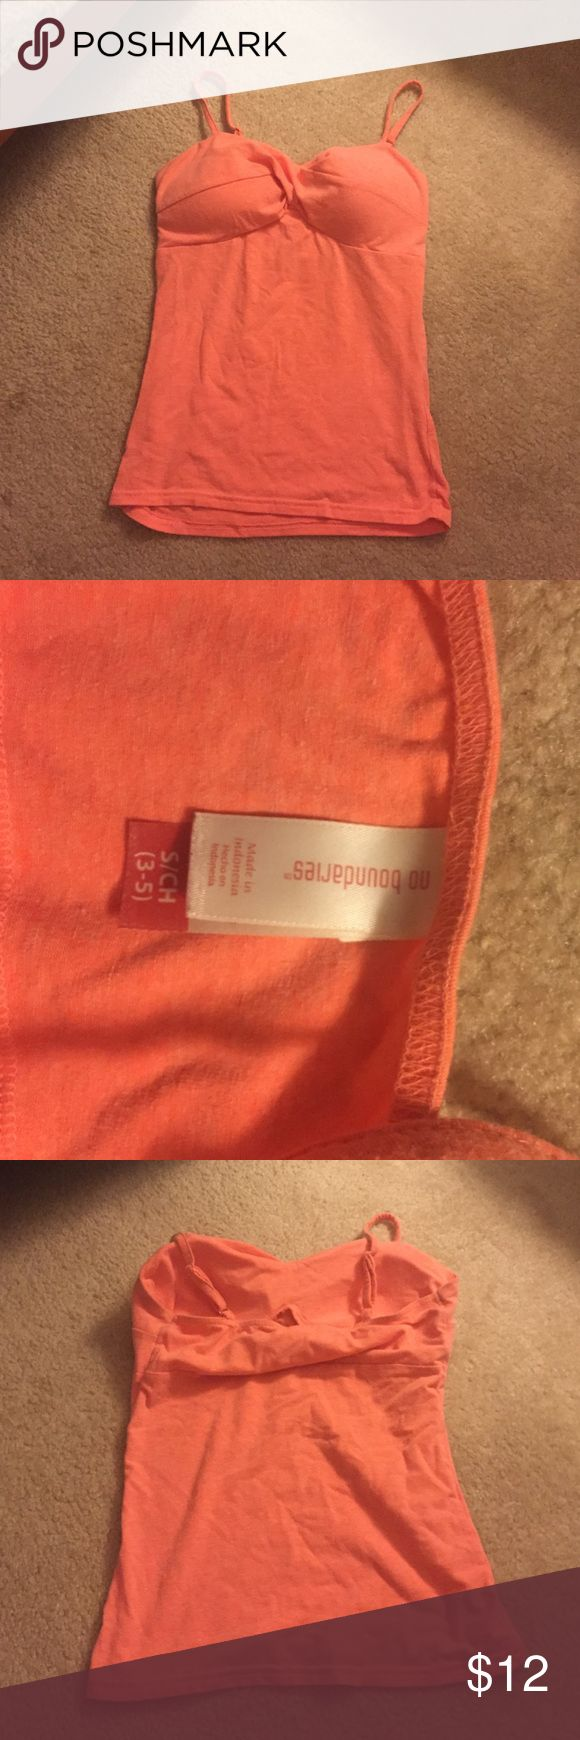 Padded orange cami Worn once or twice, perfect condition No Boundaries Tops Camisoles